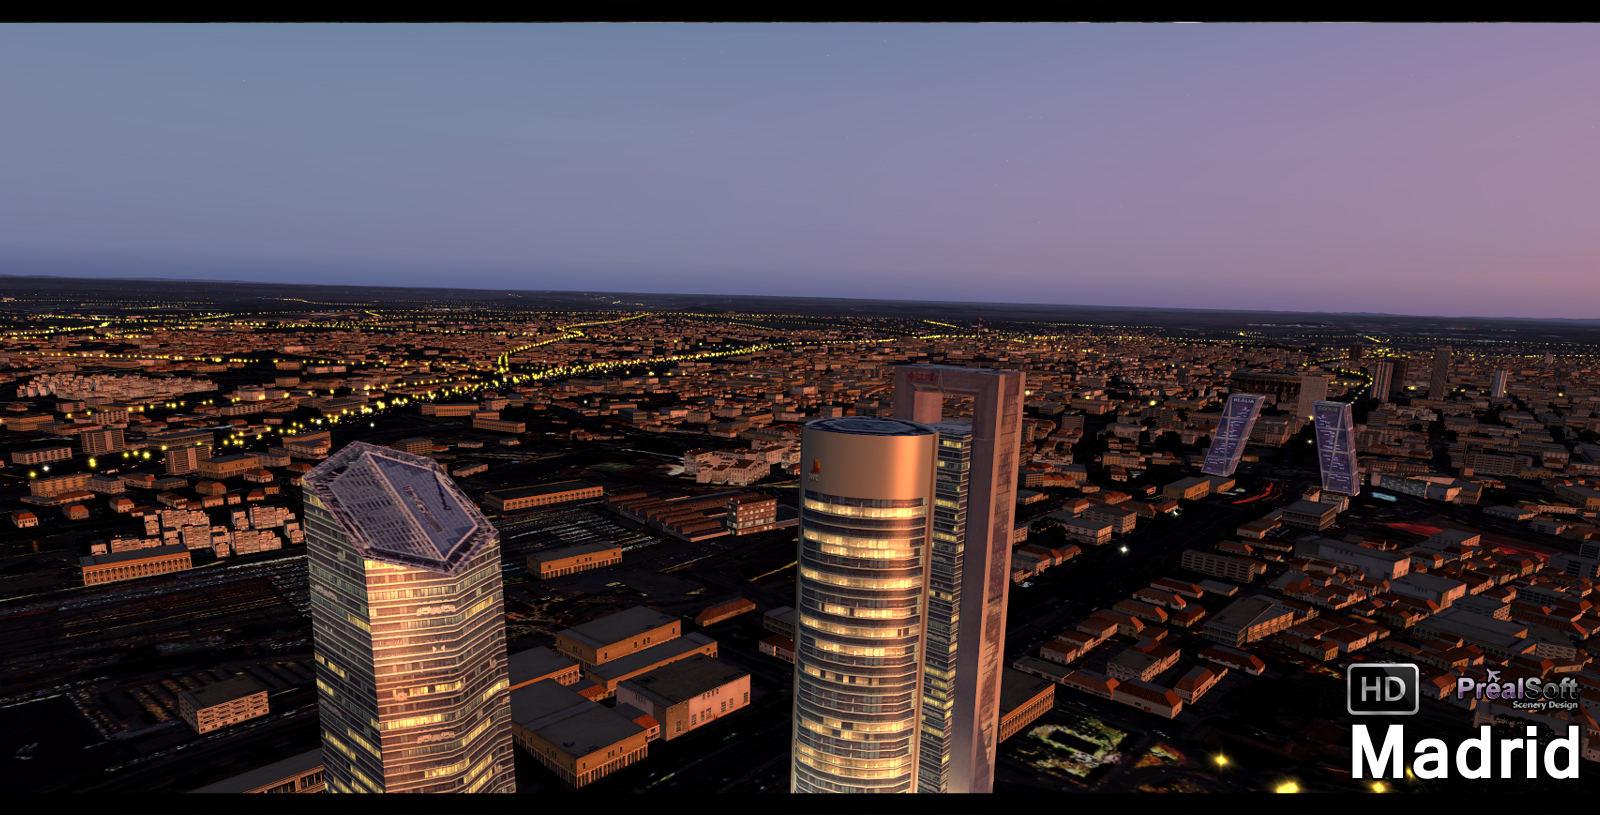 PREALSOFT - HD CITIES - MADRID - AUTOGEN FSX P3D